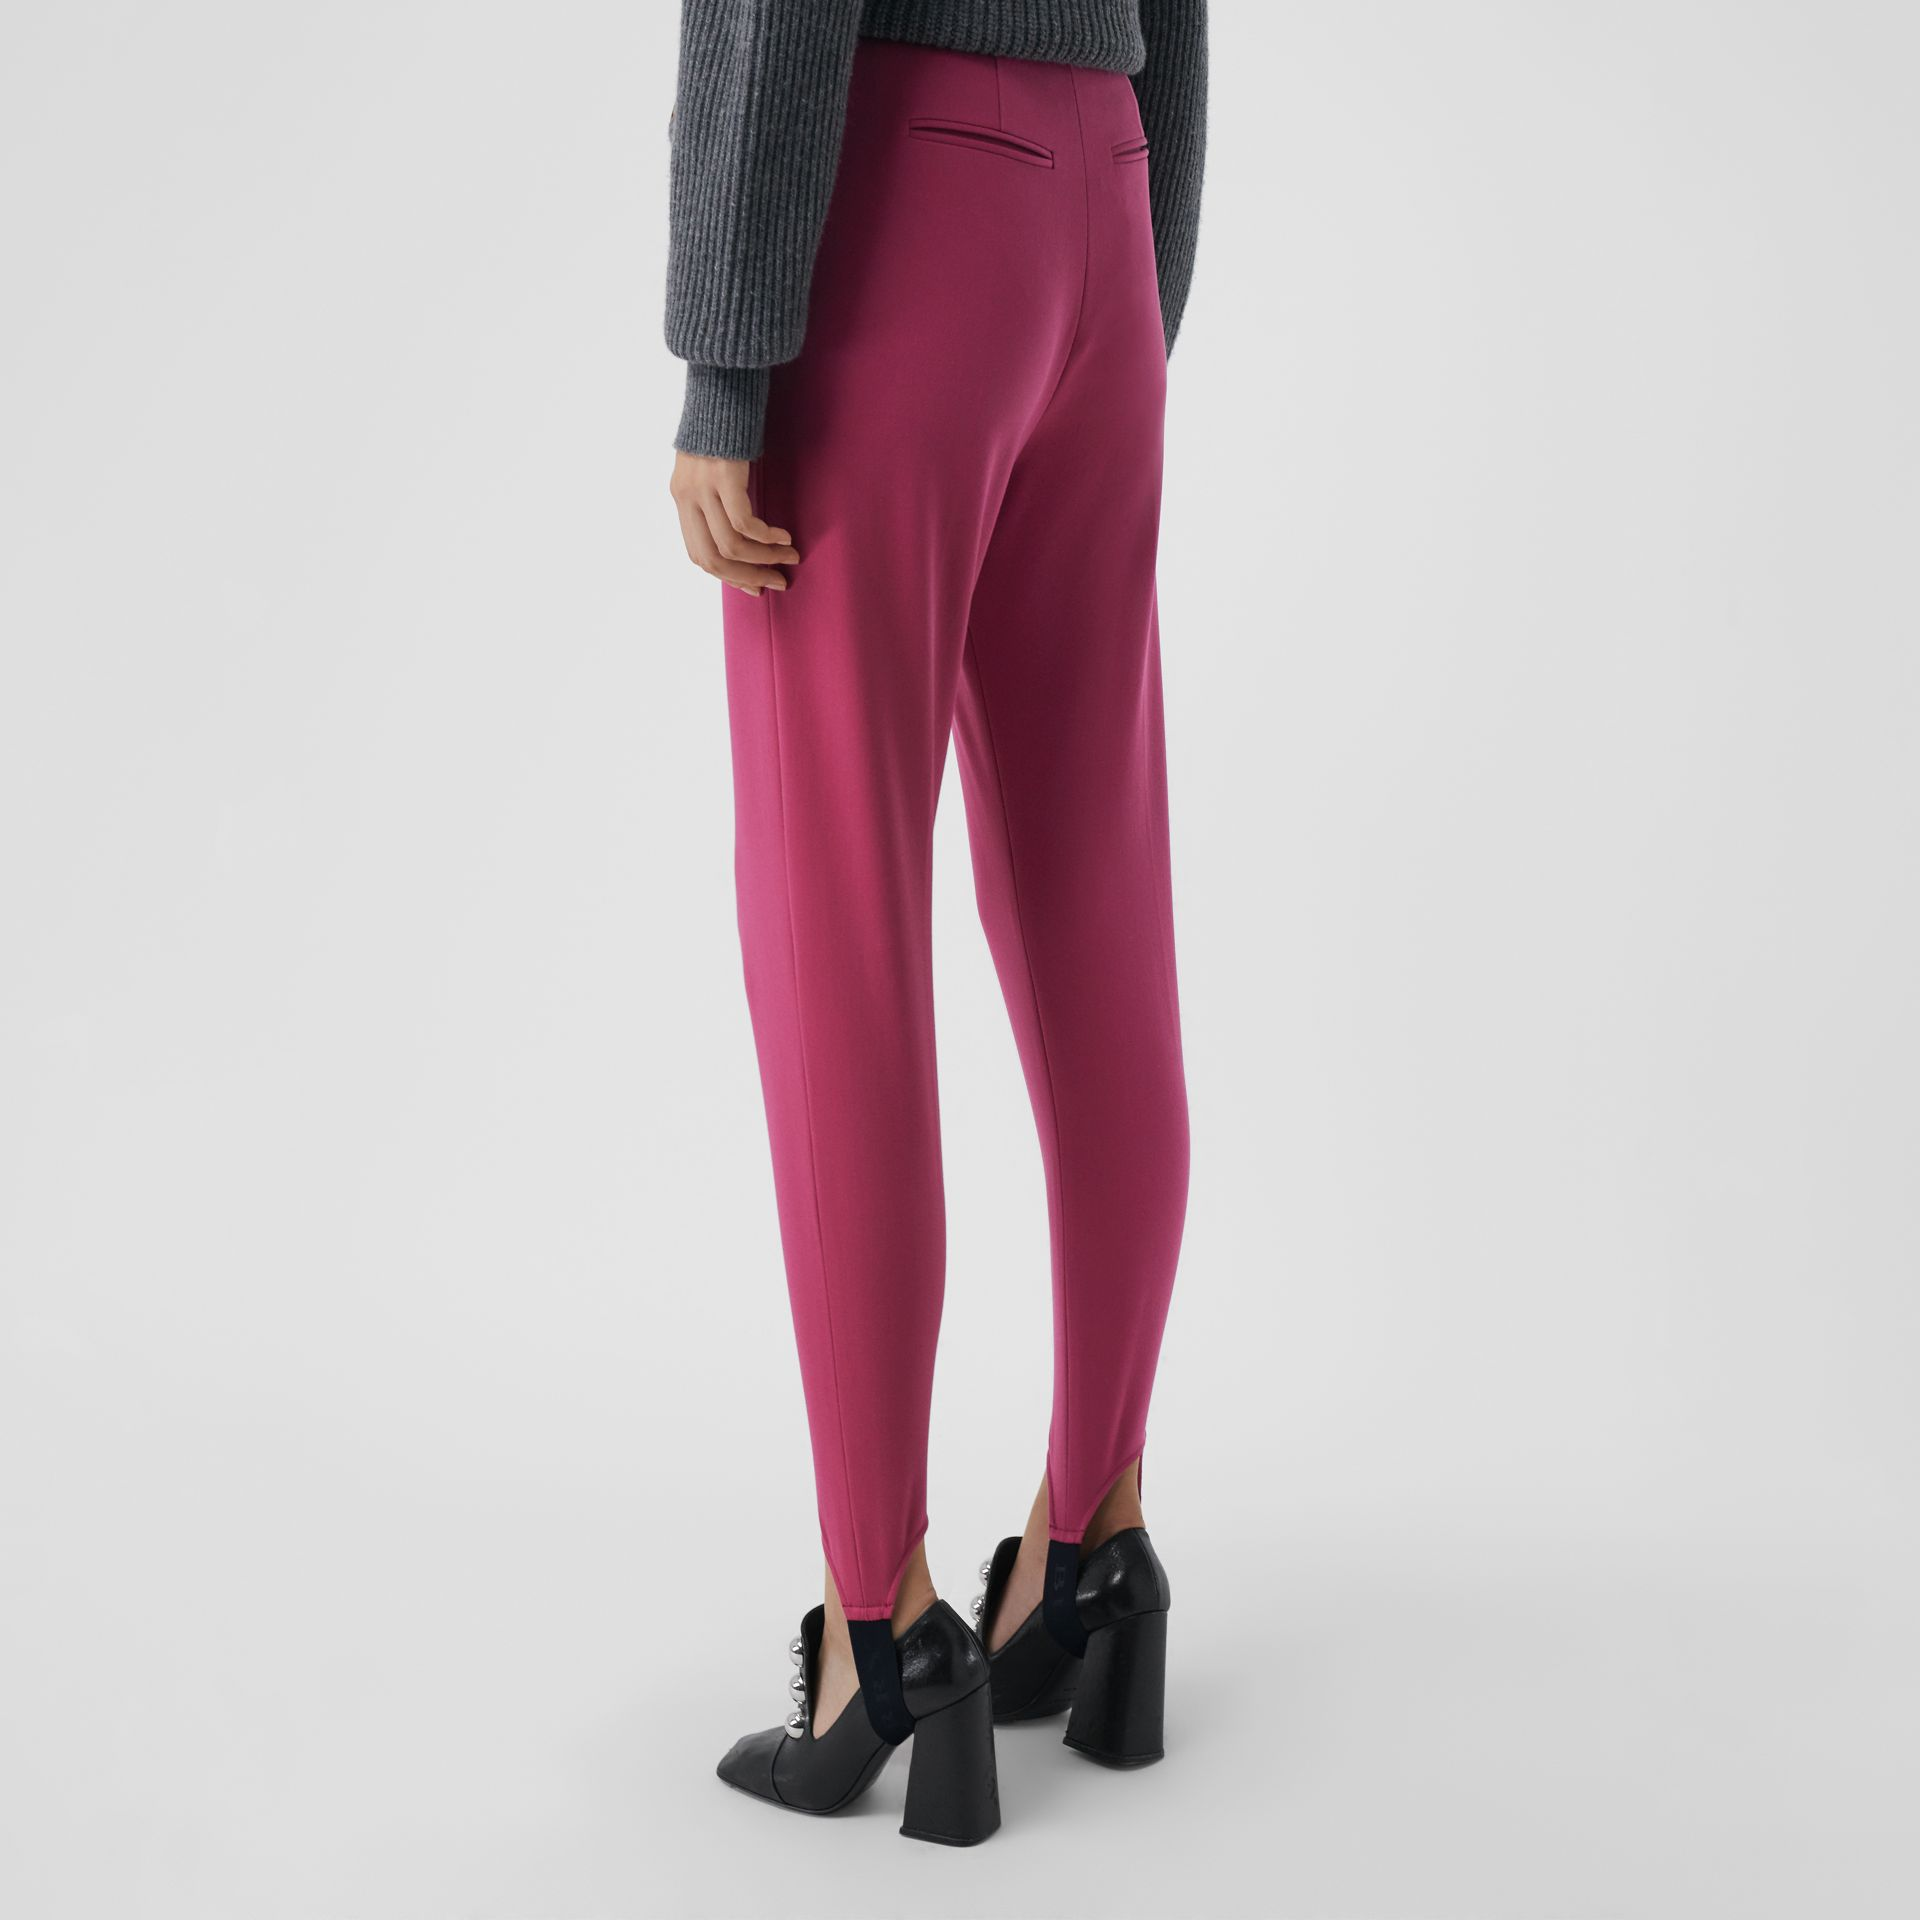 Cotton Blend Tailored Jodhpurs in Plum Pink - Women | Burberry - gallery image 2